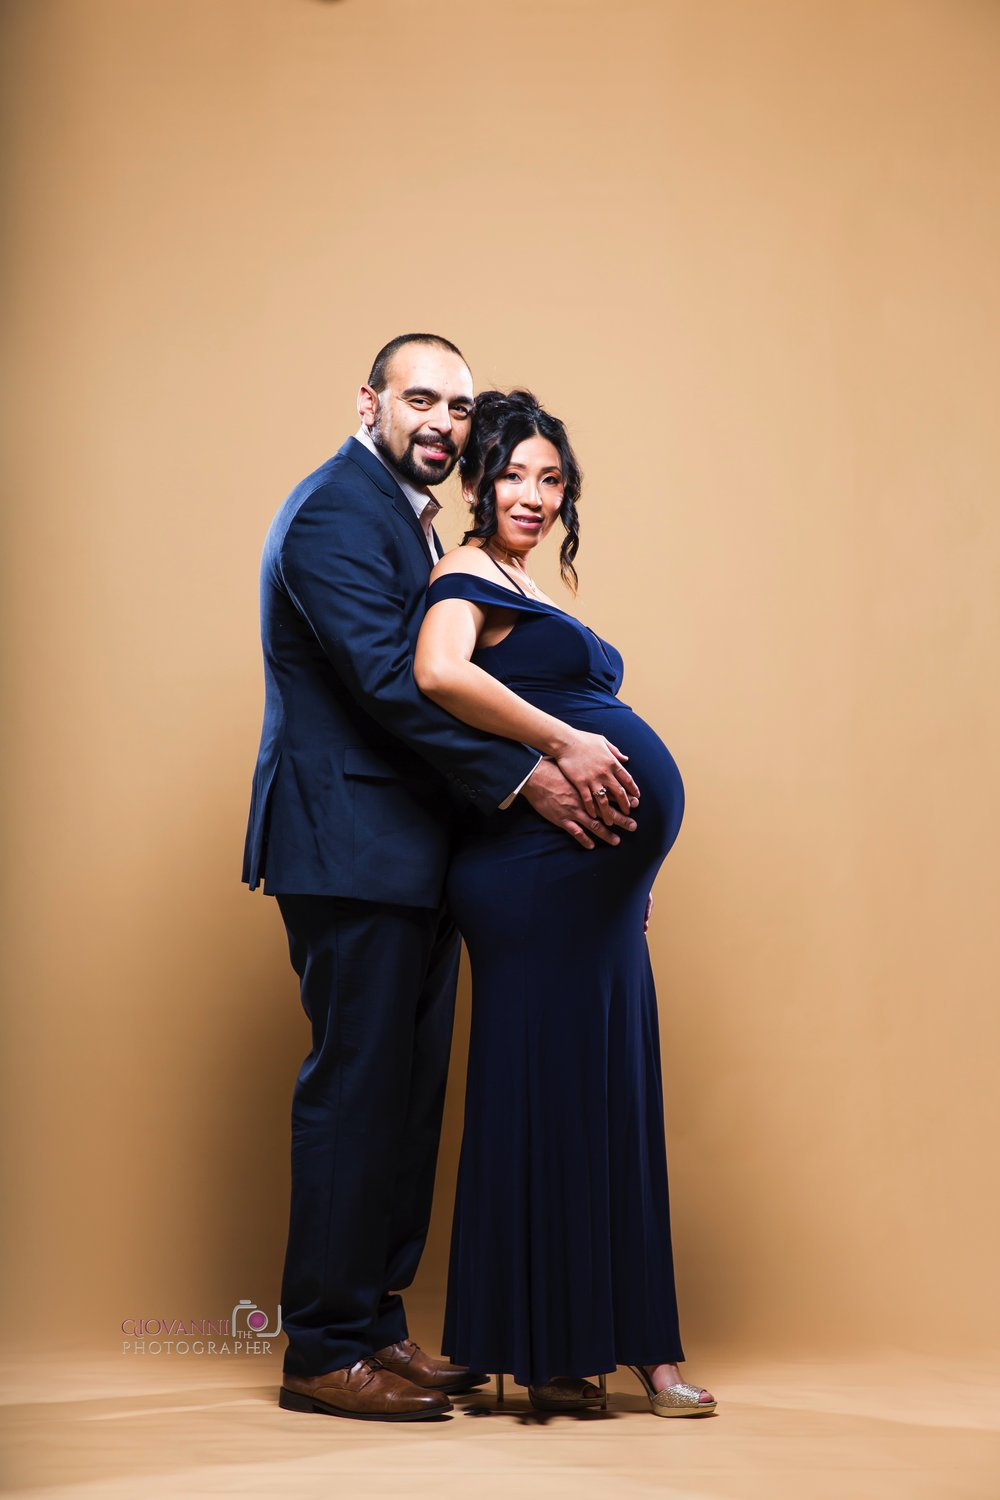 314A9291 Giovanni The Photographer Best Boston Family Maternity Photography Studio Rental WM100.jpg